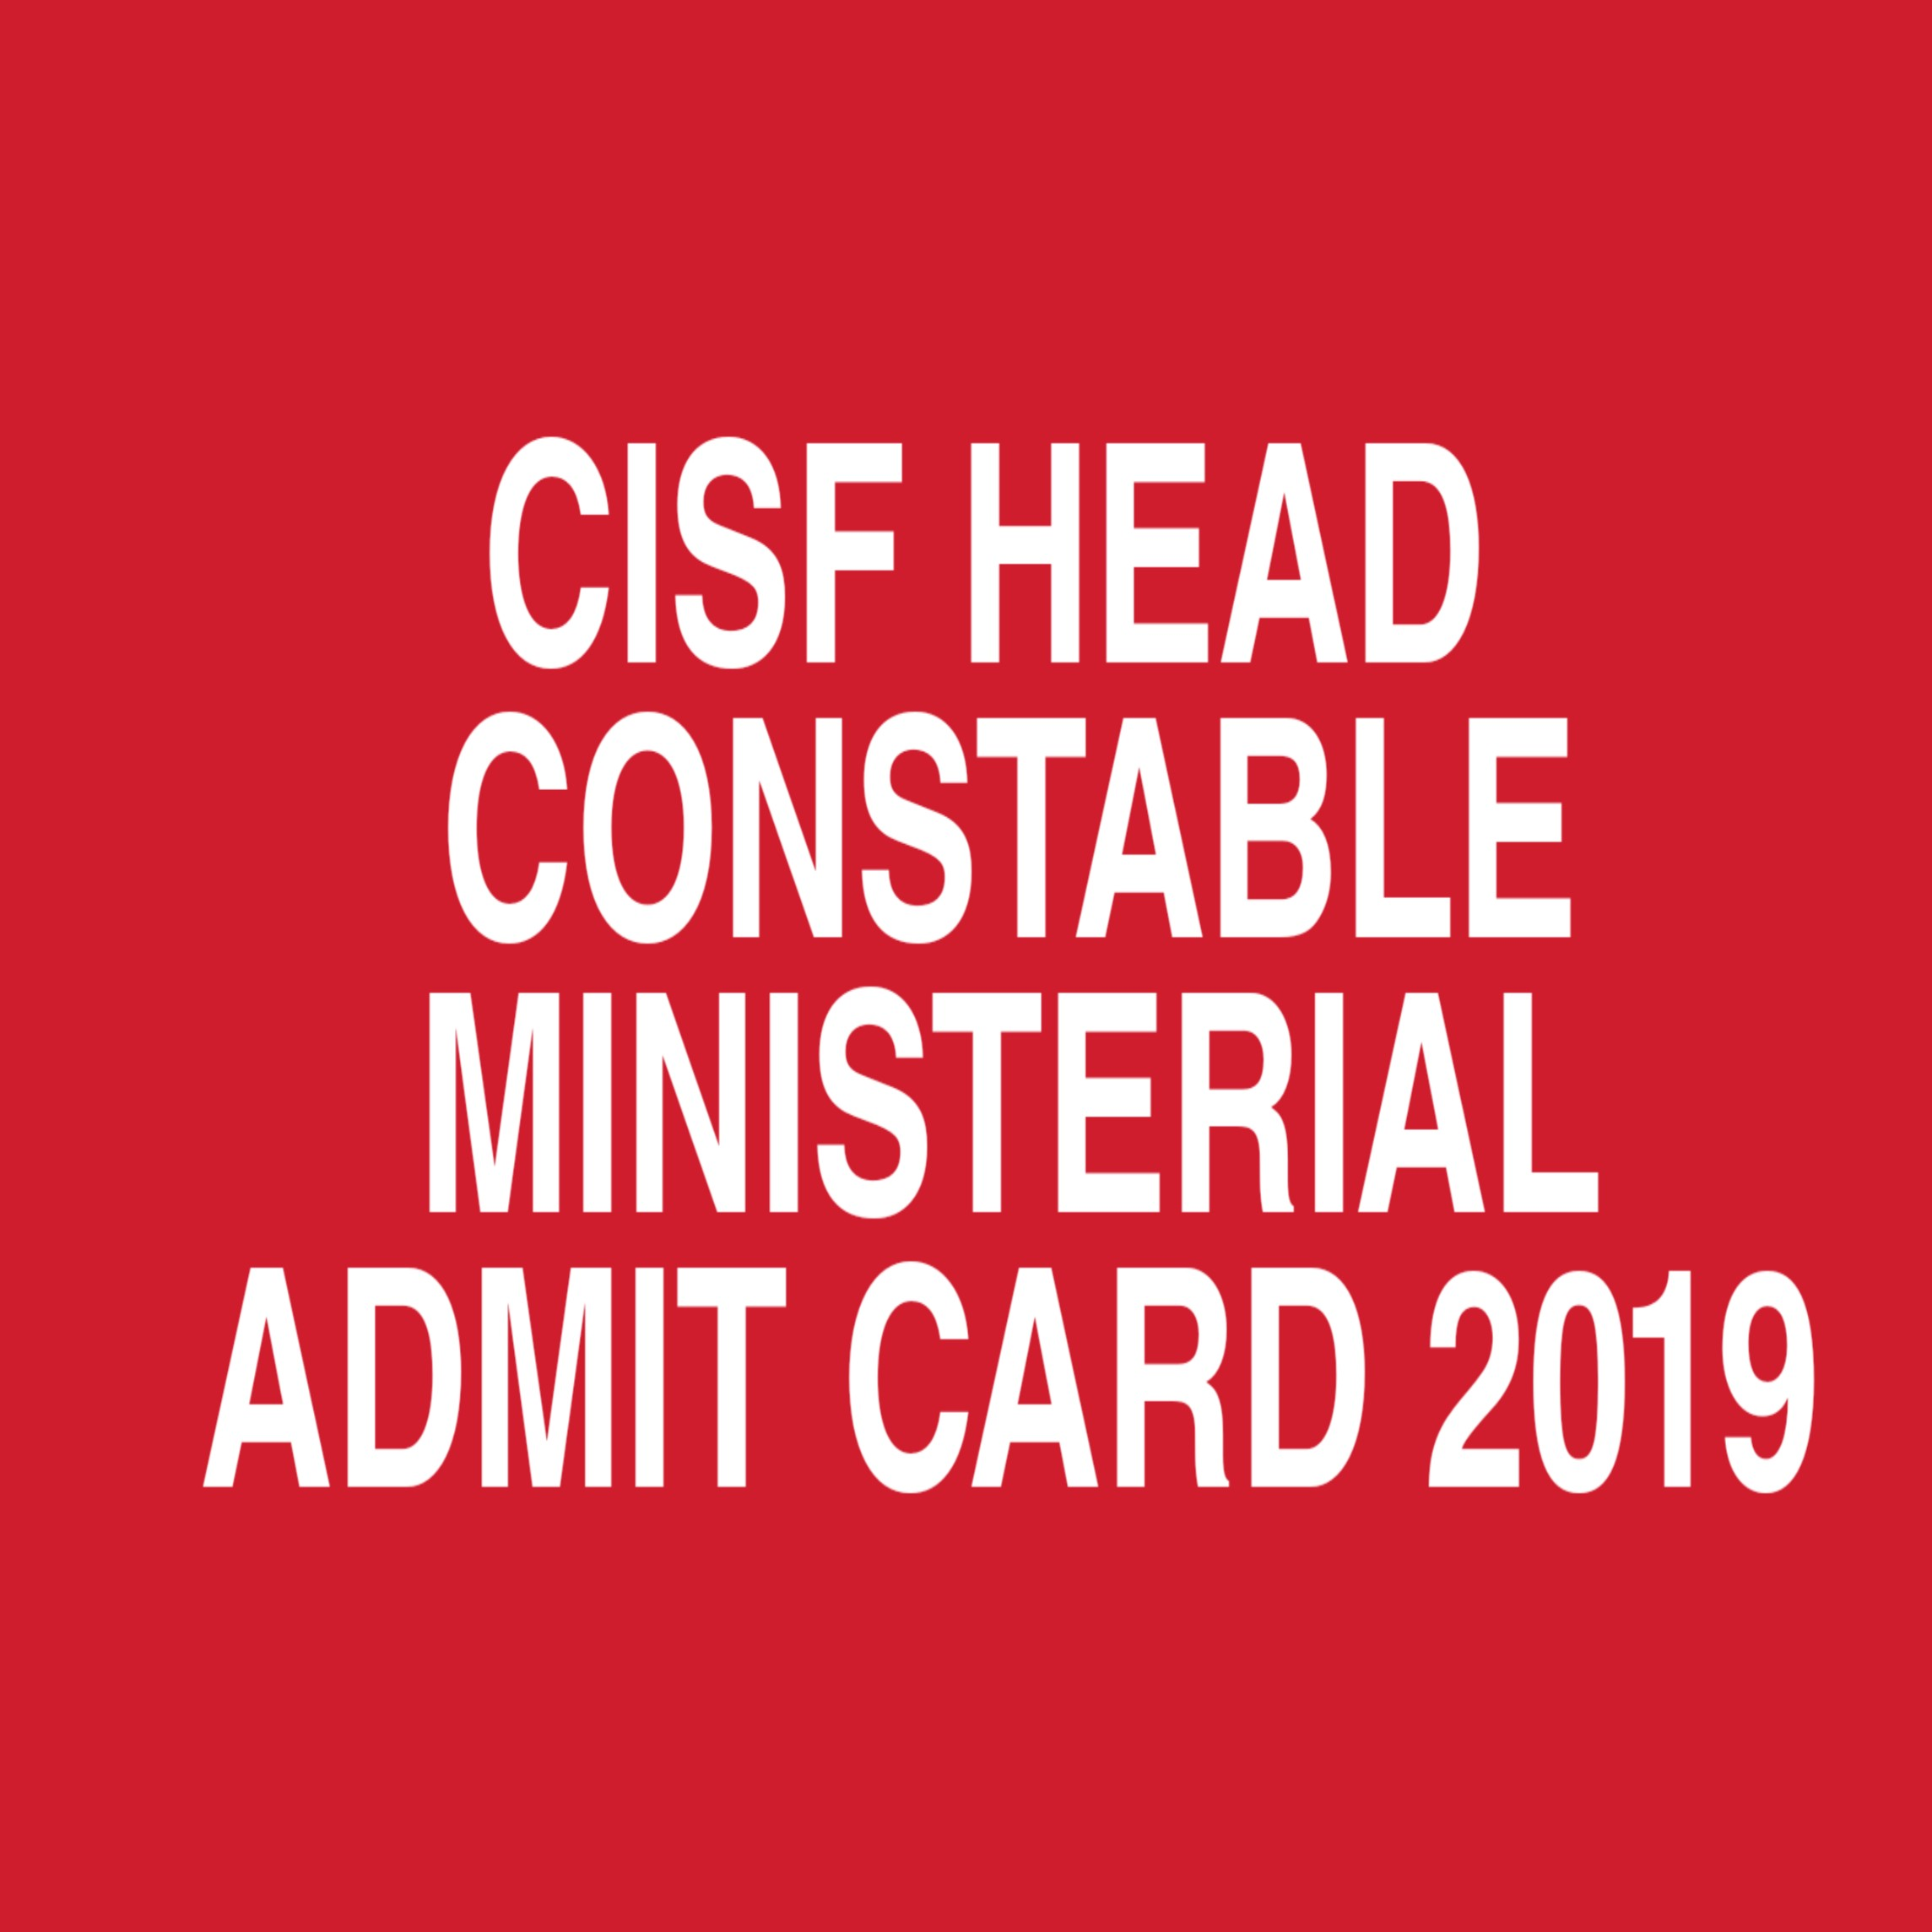 CISF HEAD CONSTABLE MINISTERIAL ADMIT CARD 2019